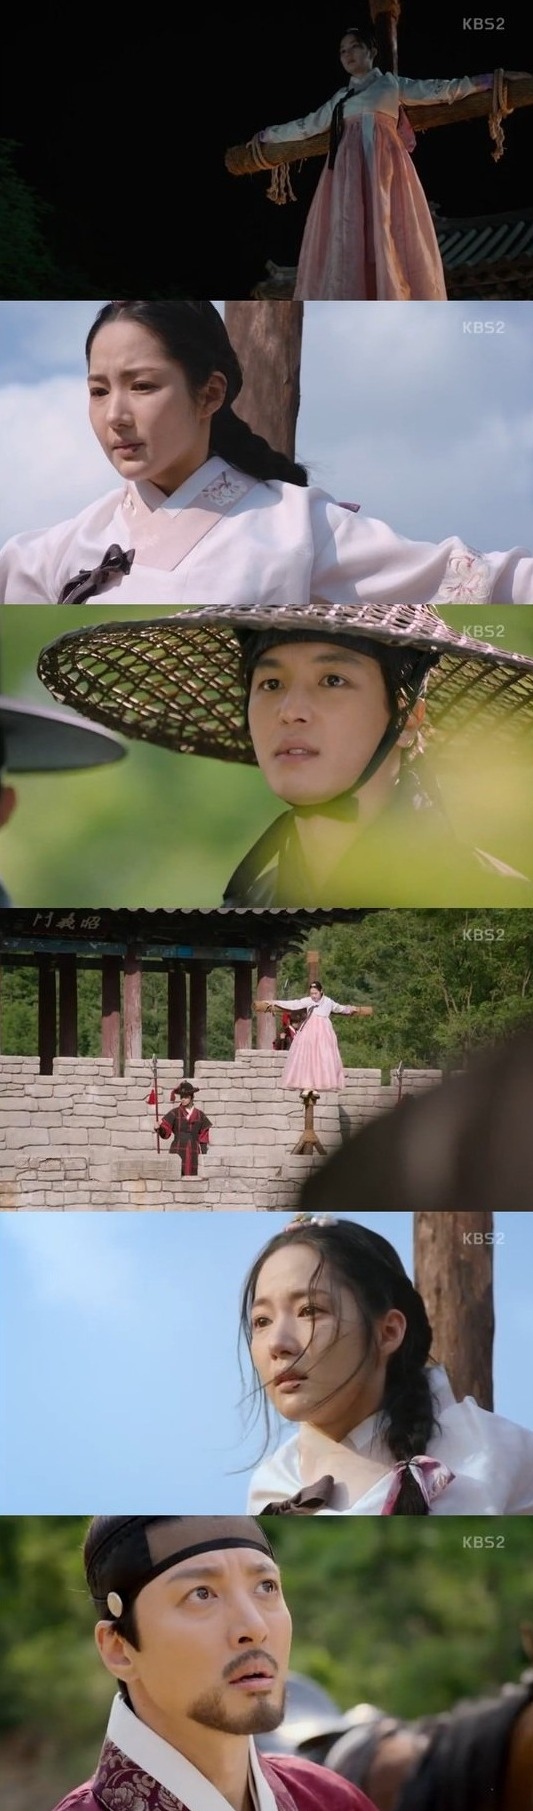 [Spoiler] Added episode 8 captures for the Korean drama 'Queen for 7 Days'